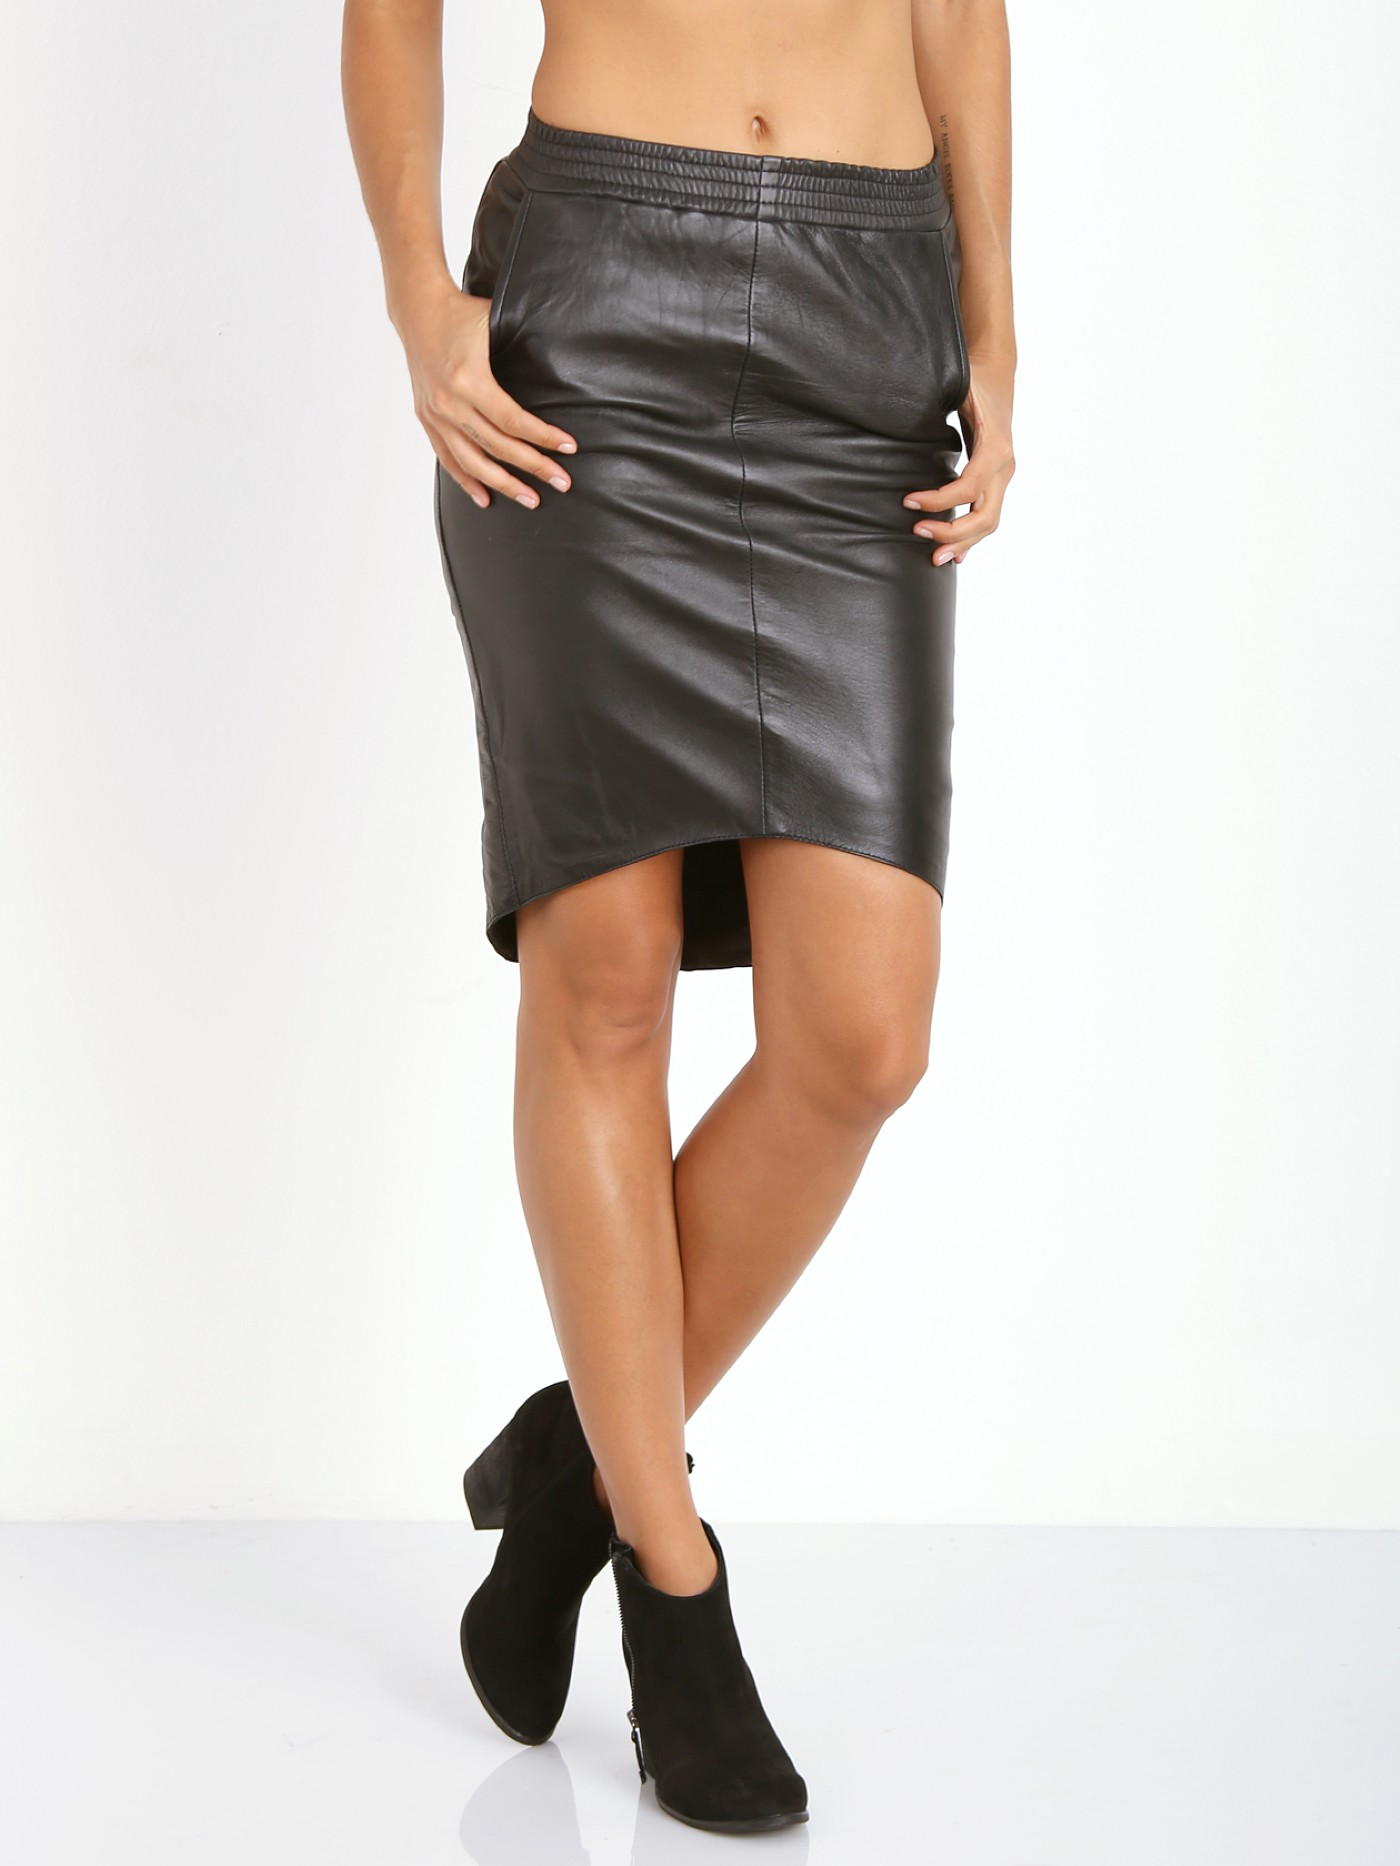 41ab628428 One Teaspoon Awesome Leather Skirt 15780B - Free Shipping at Largo Drive